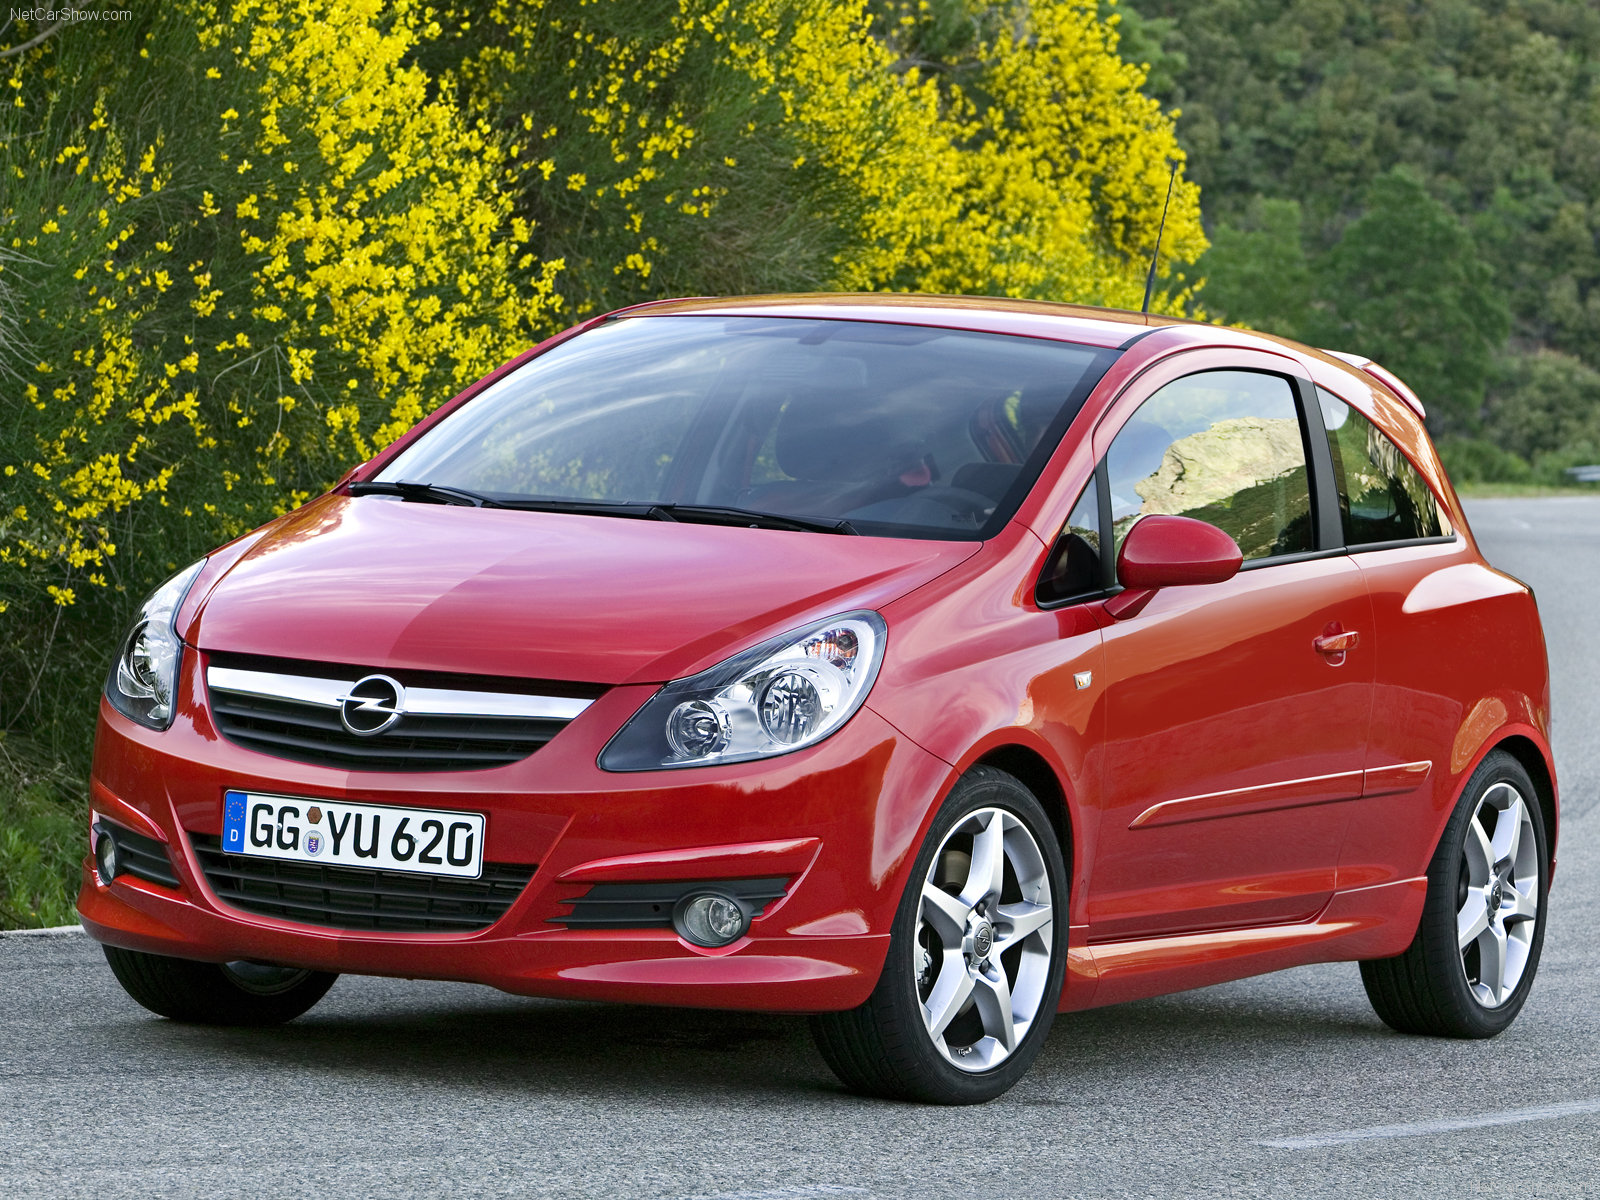 opel corsa gsi photos photogallery with 16 pics. Black Bedroom Furniture Sets. Home Design Ideas